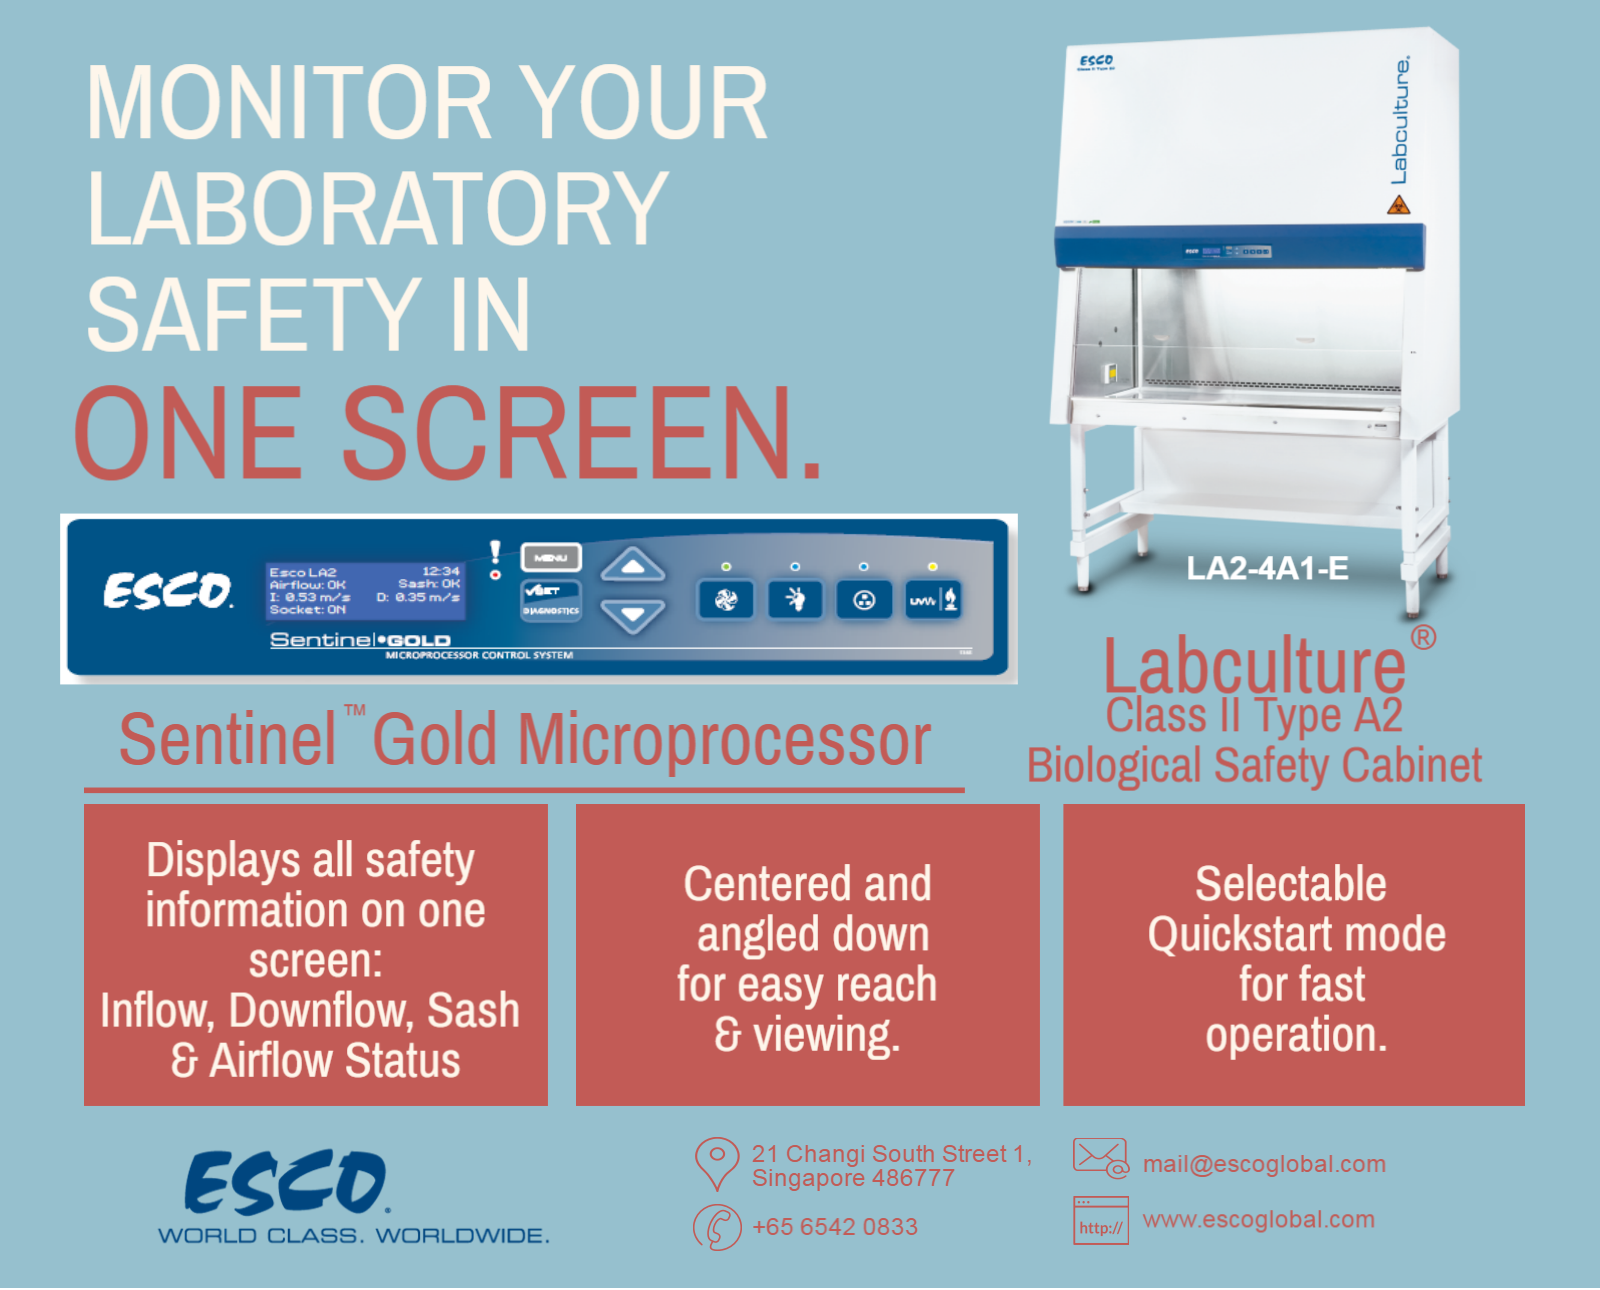 Esco Biological Safety Cabinets are equipped with Sentinel ™ Gold